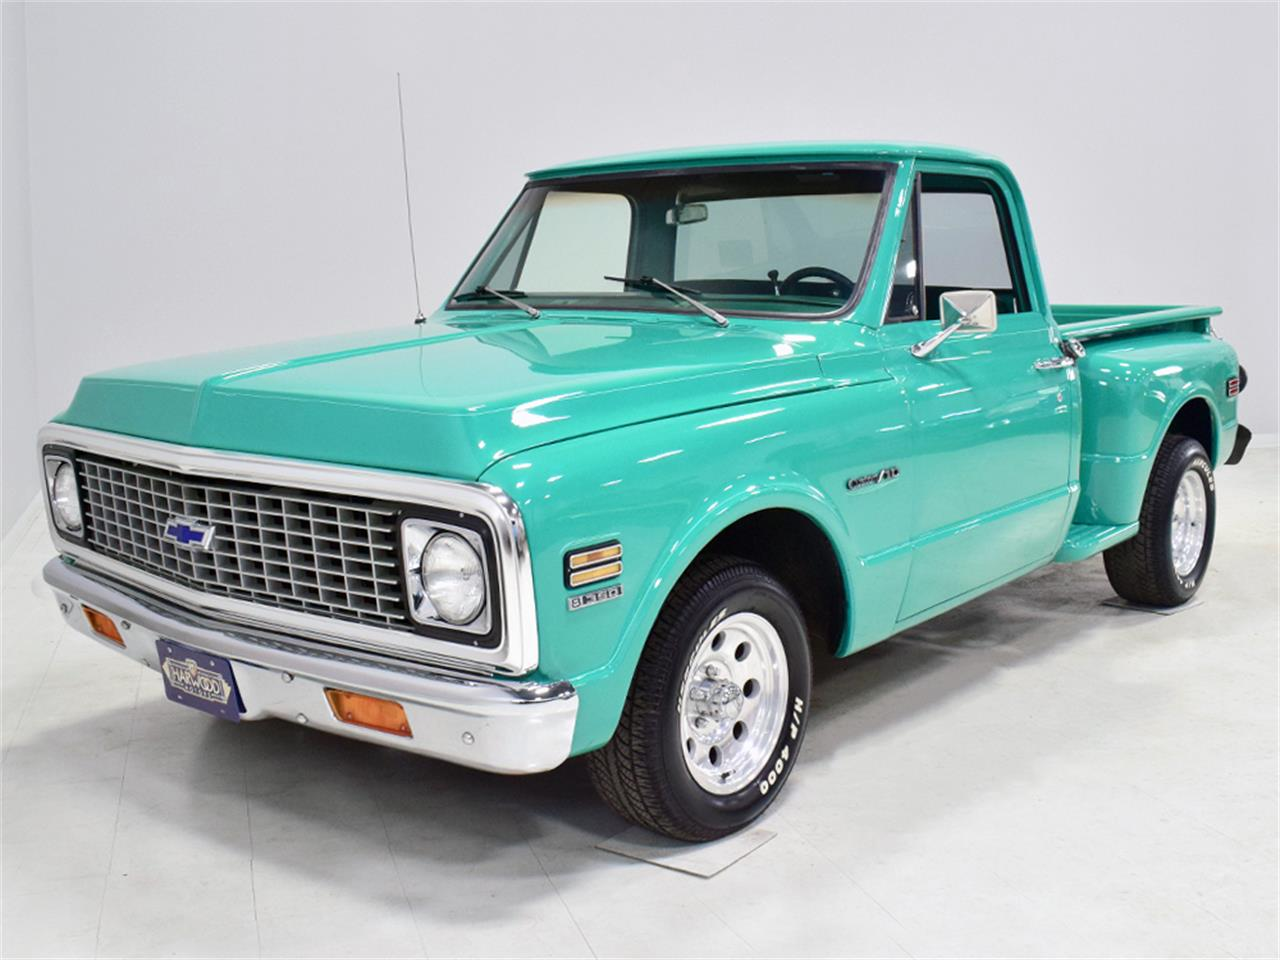 Large Picture of '71 Chevrolet C10 located in Macedonia Ohio - $29,900.00 - PNQR